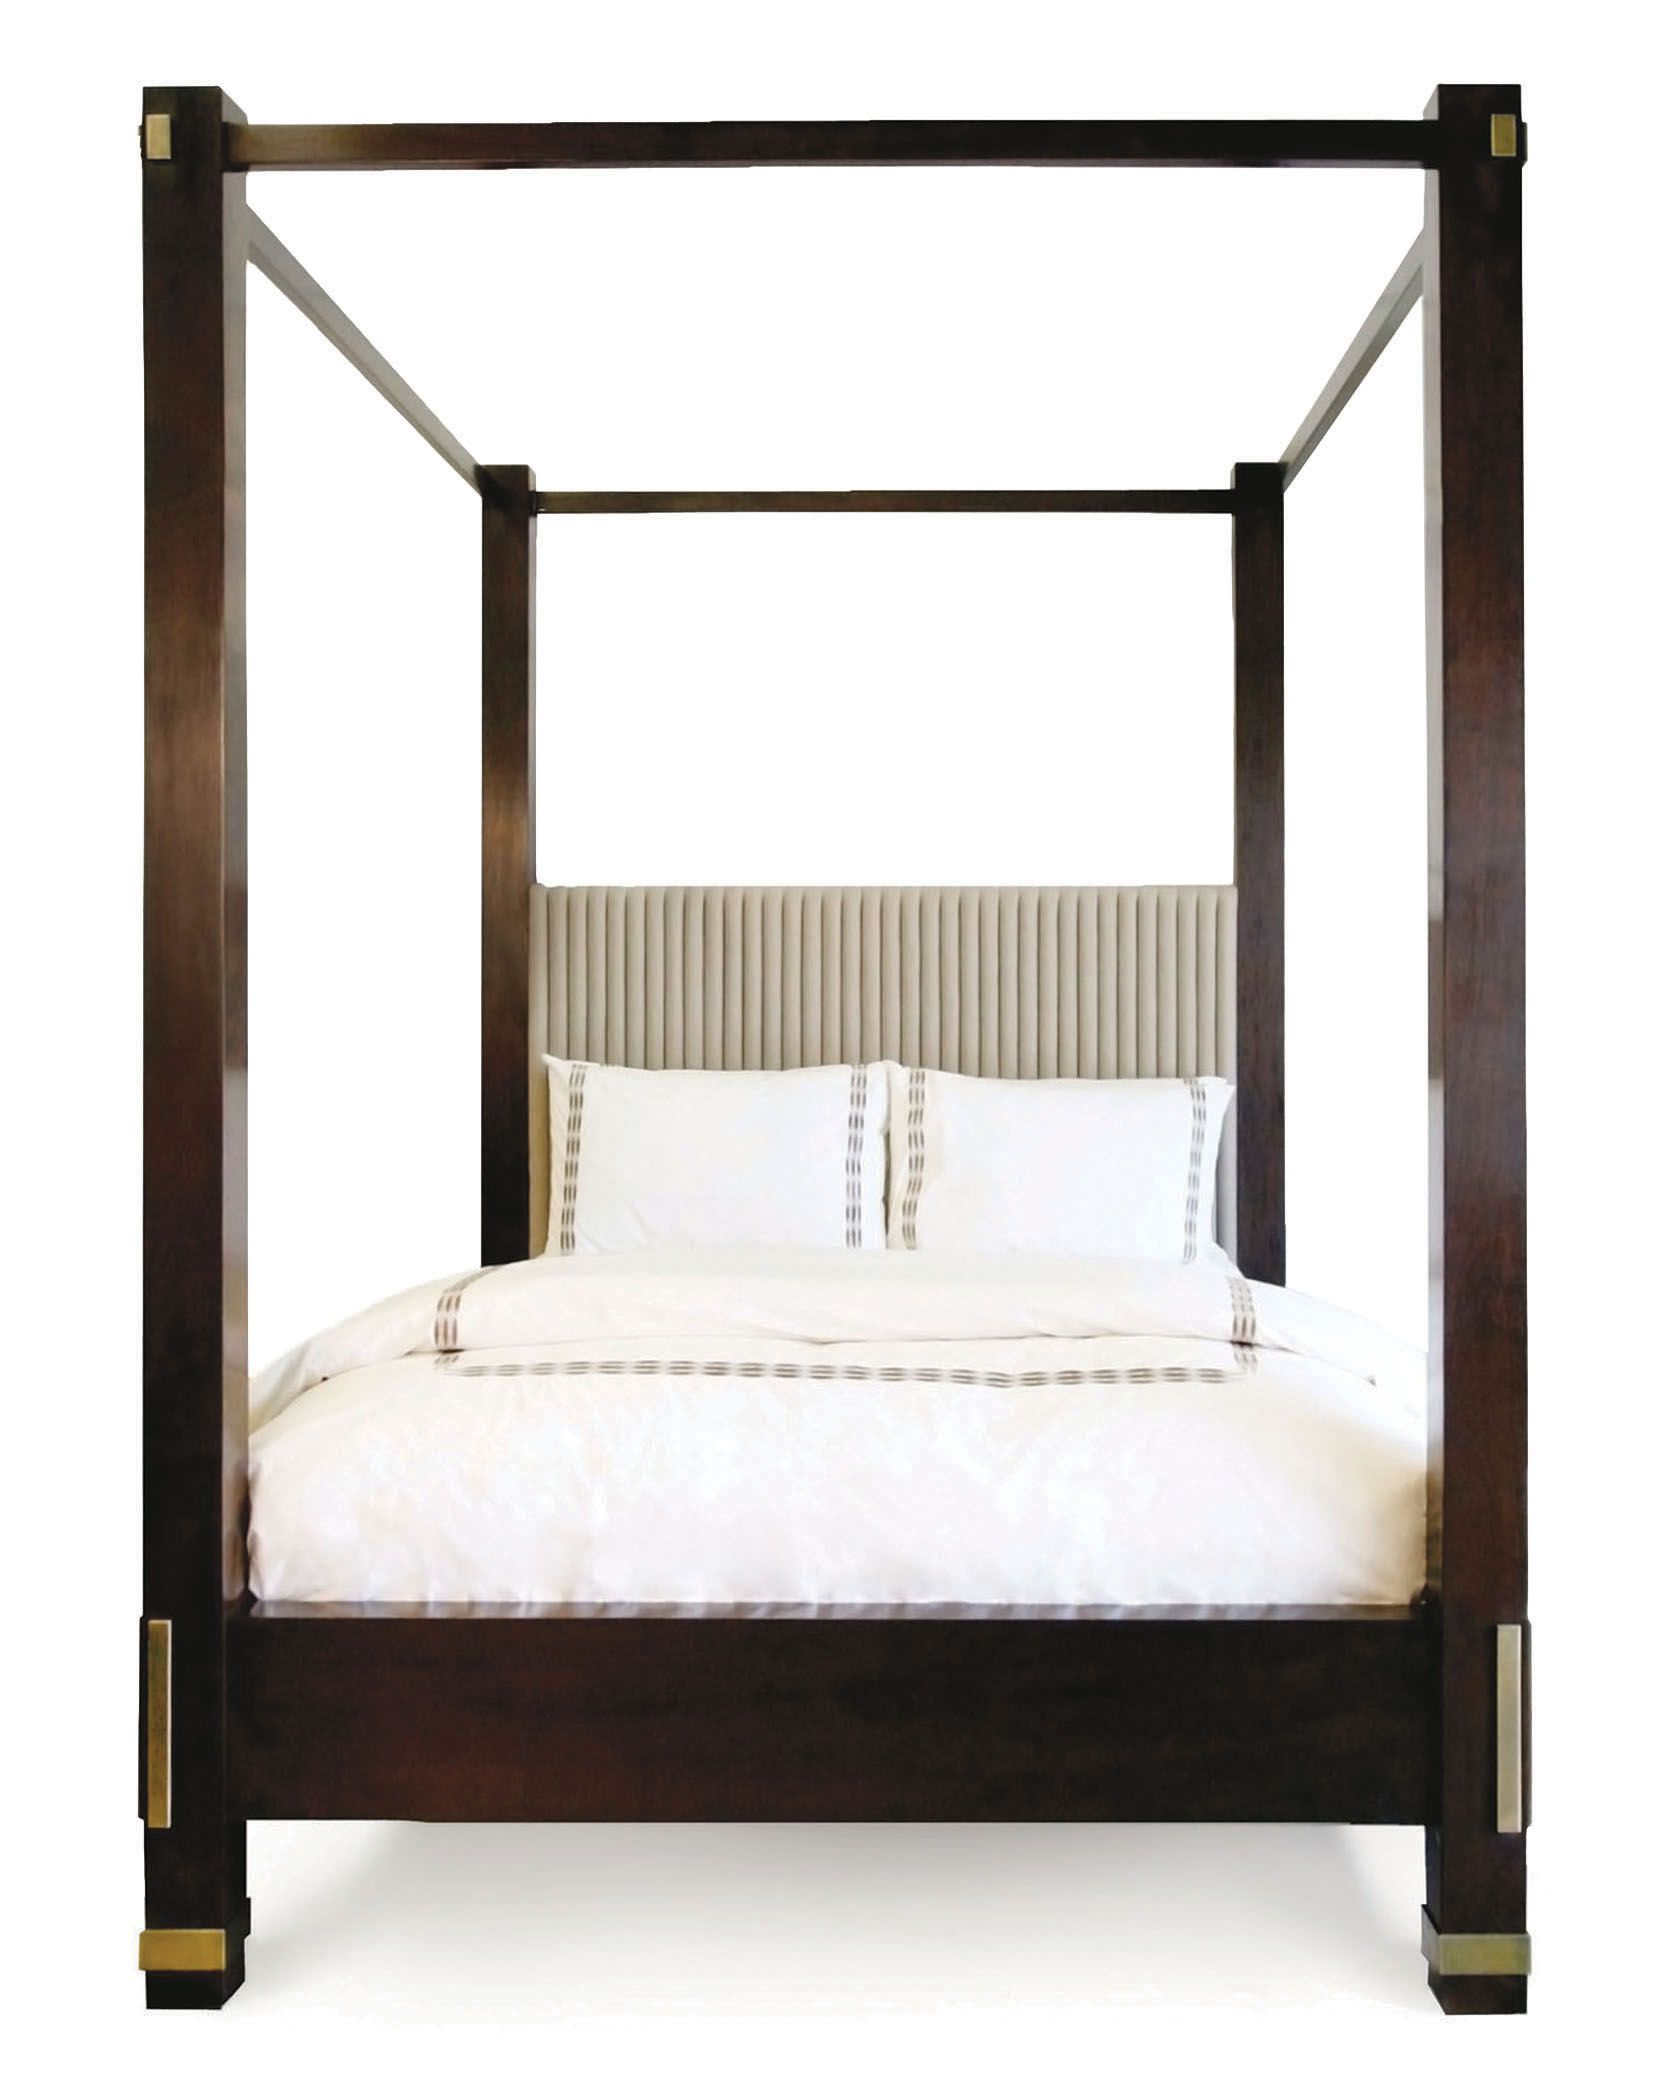 Headboard Height upholstered headboard, channeled mattress heights will vary. to